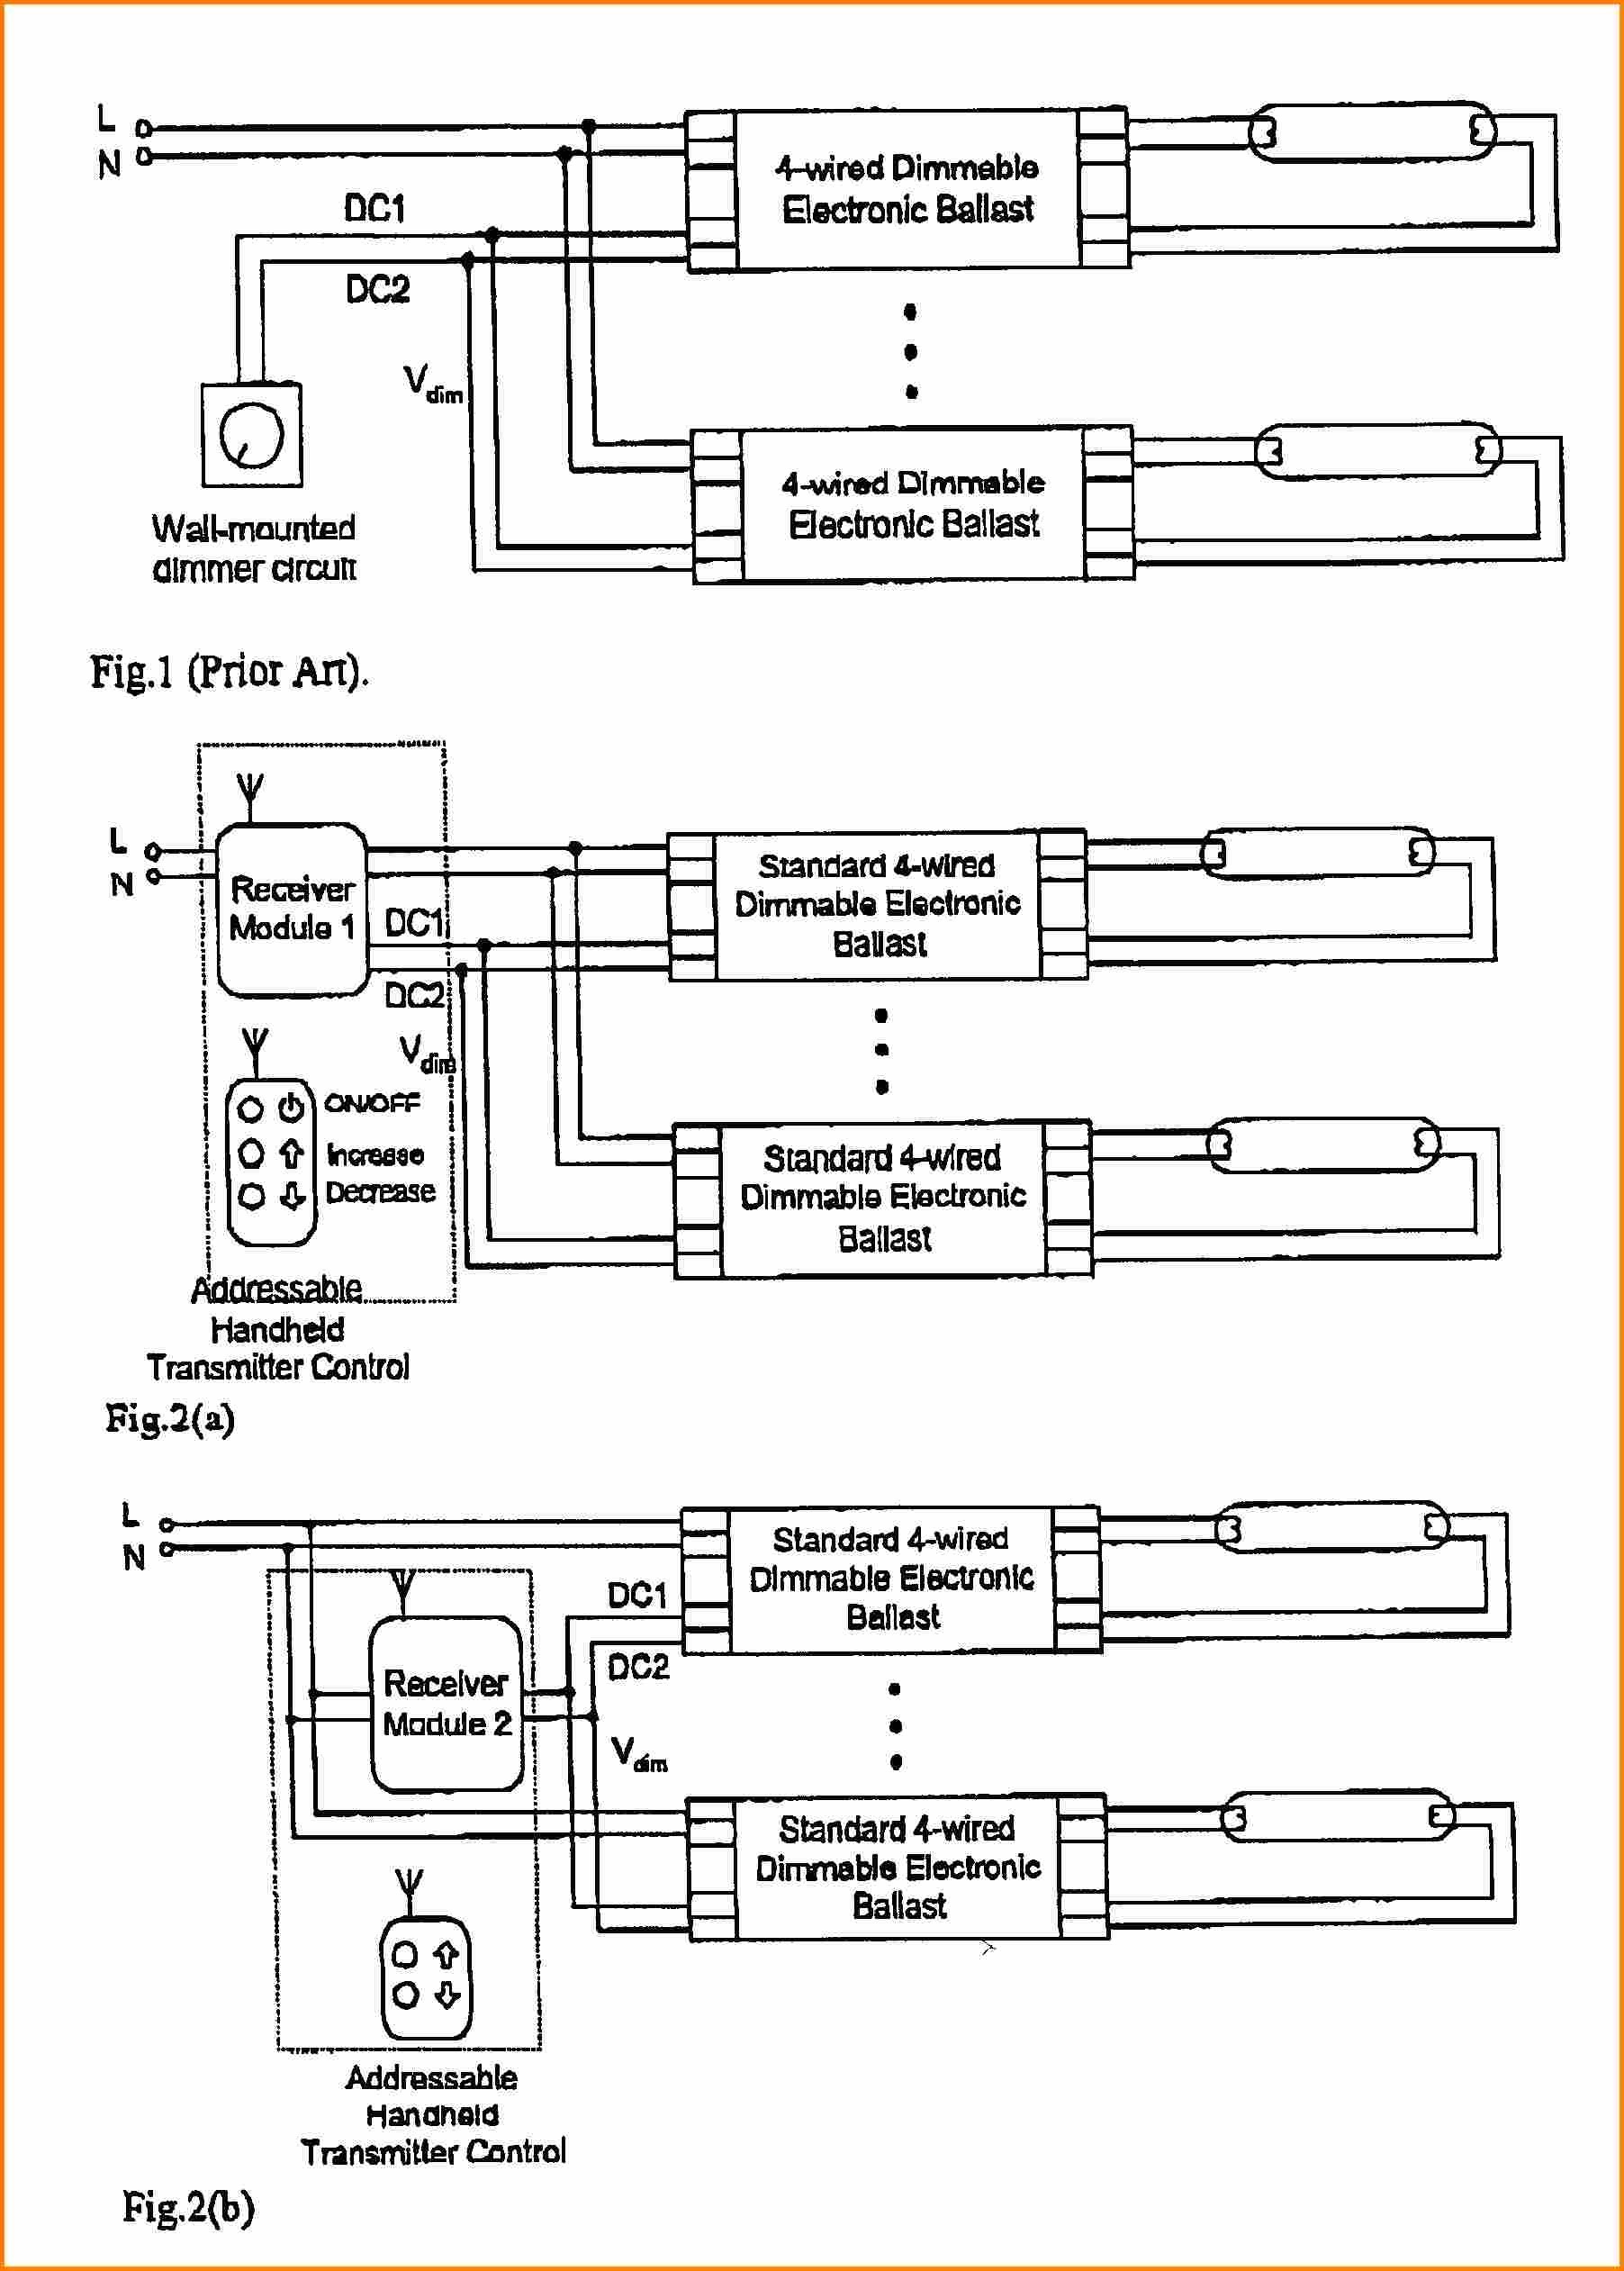 Wiring Diagram For A Three Way Dimmer Switch